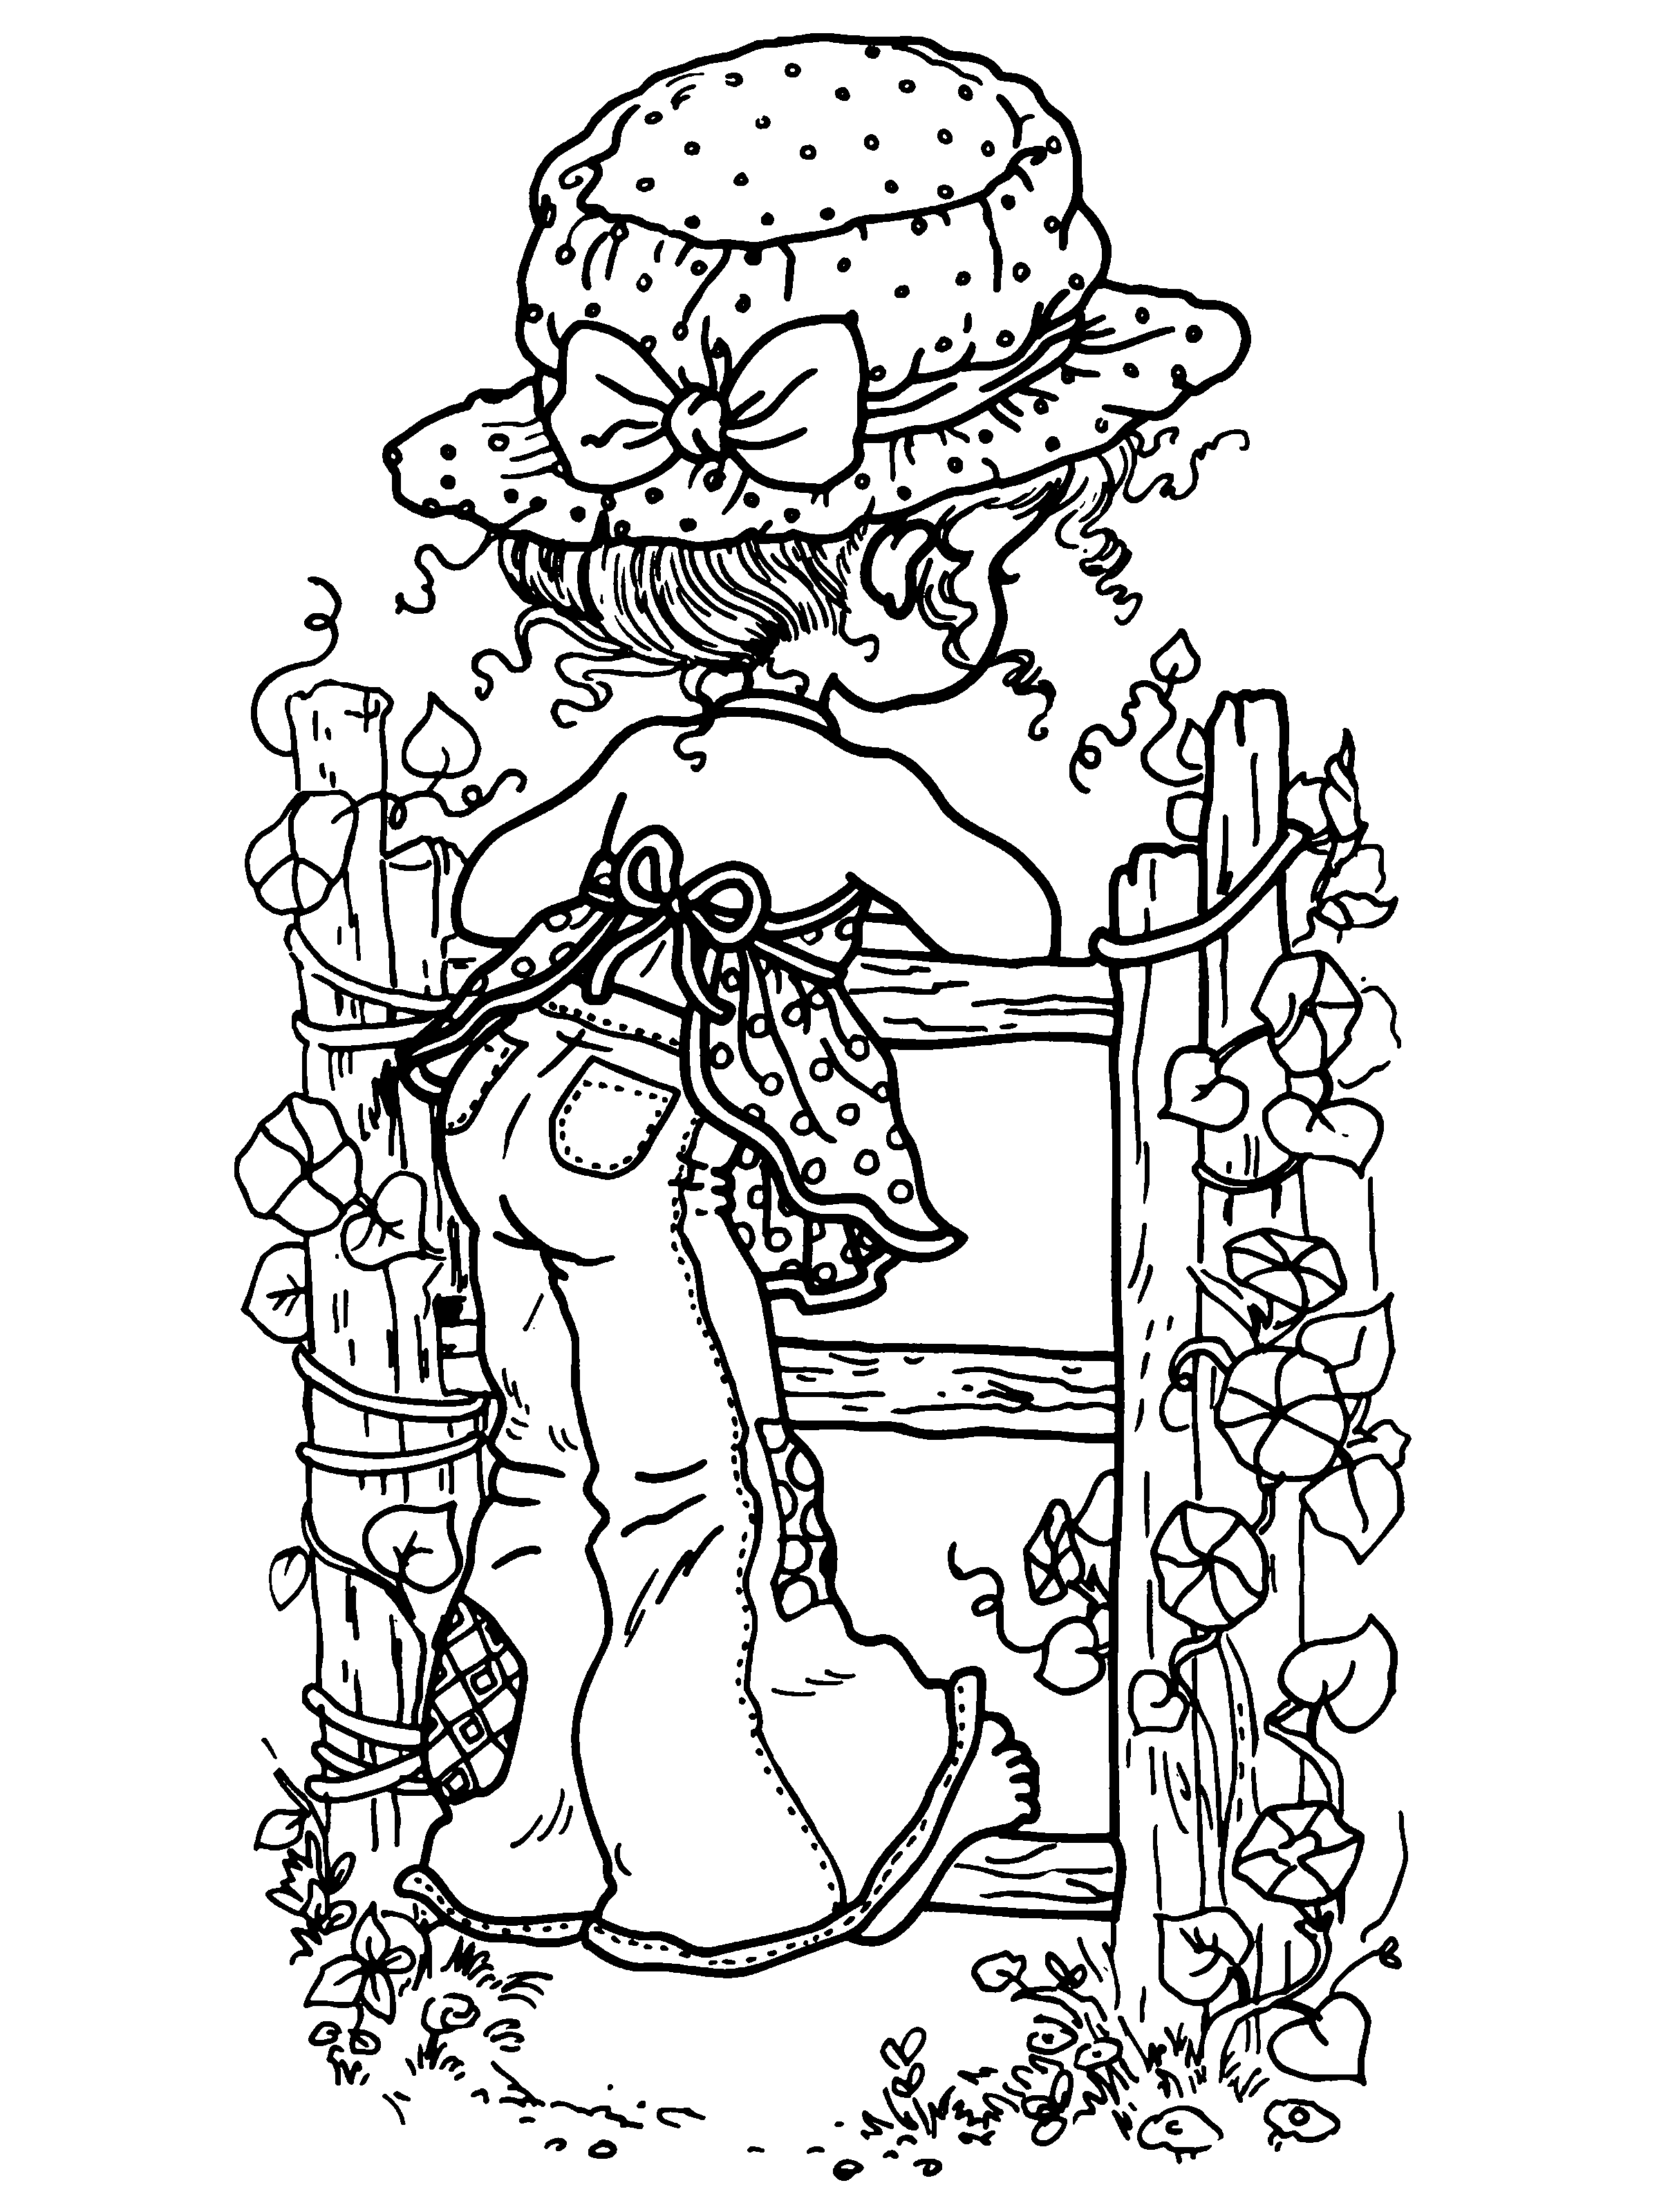 Sarah Kay 01 10 Png 2400 3200 Coloring Pages Coloring Books Colouring Pages